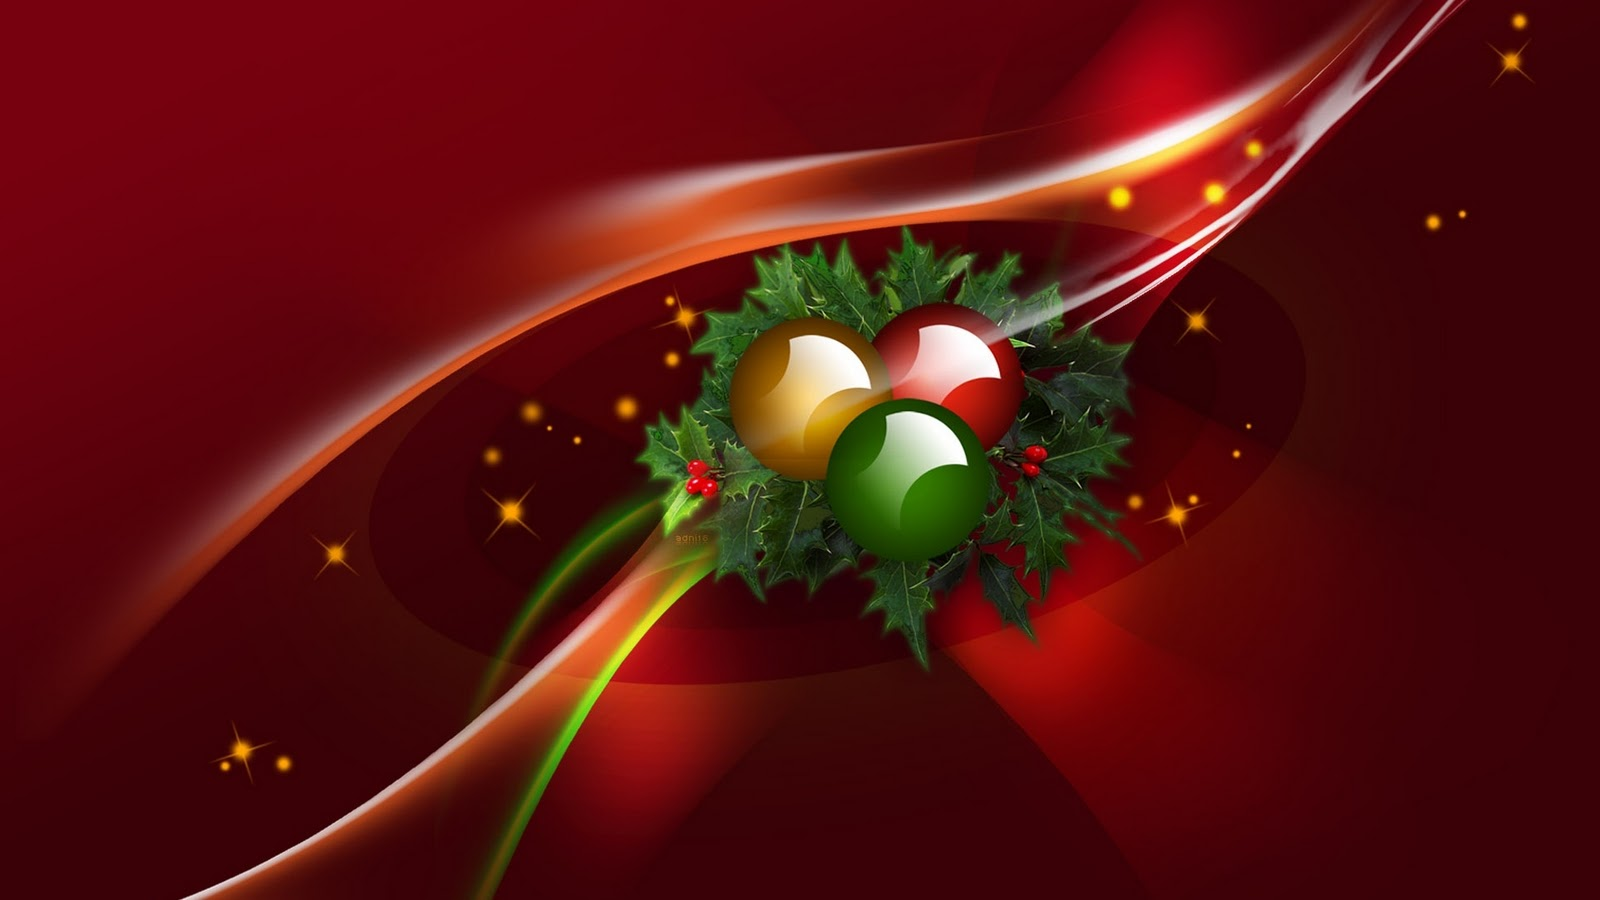 free wallpaper holidays - photo #27